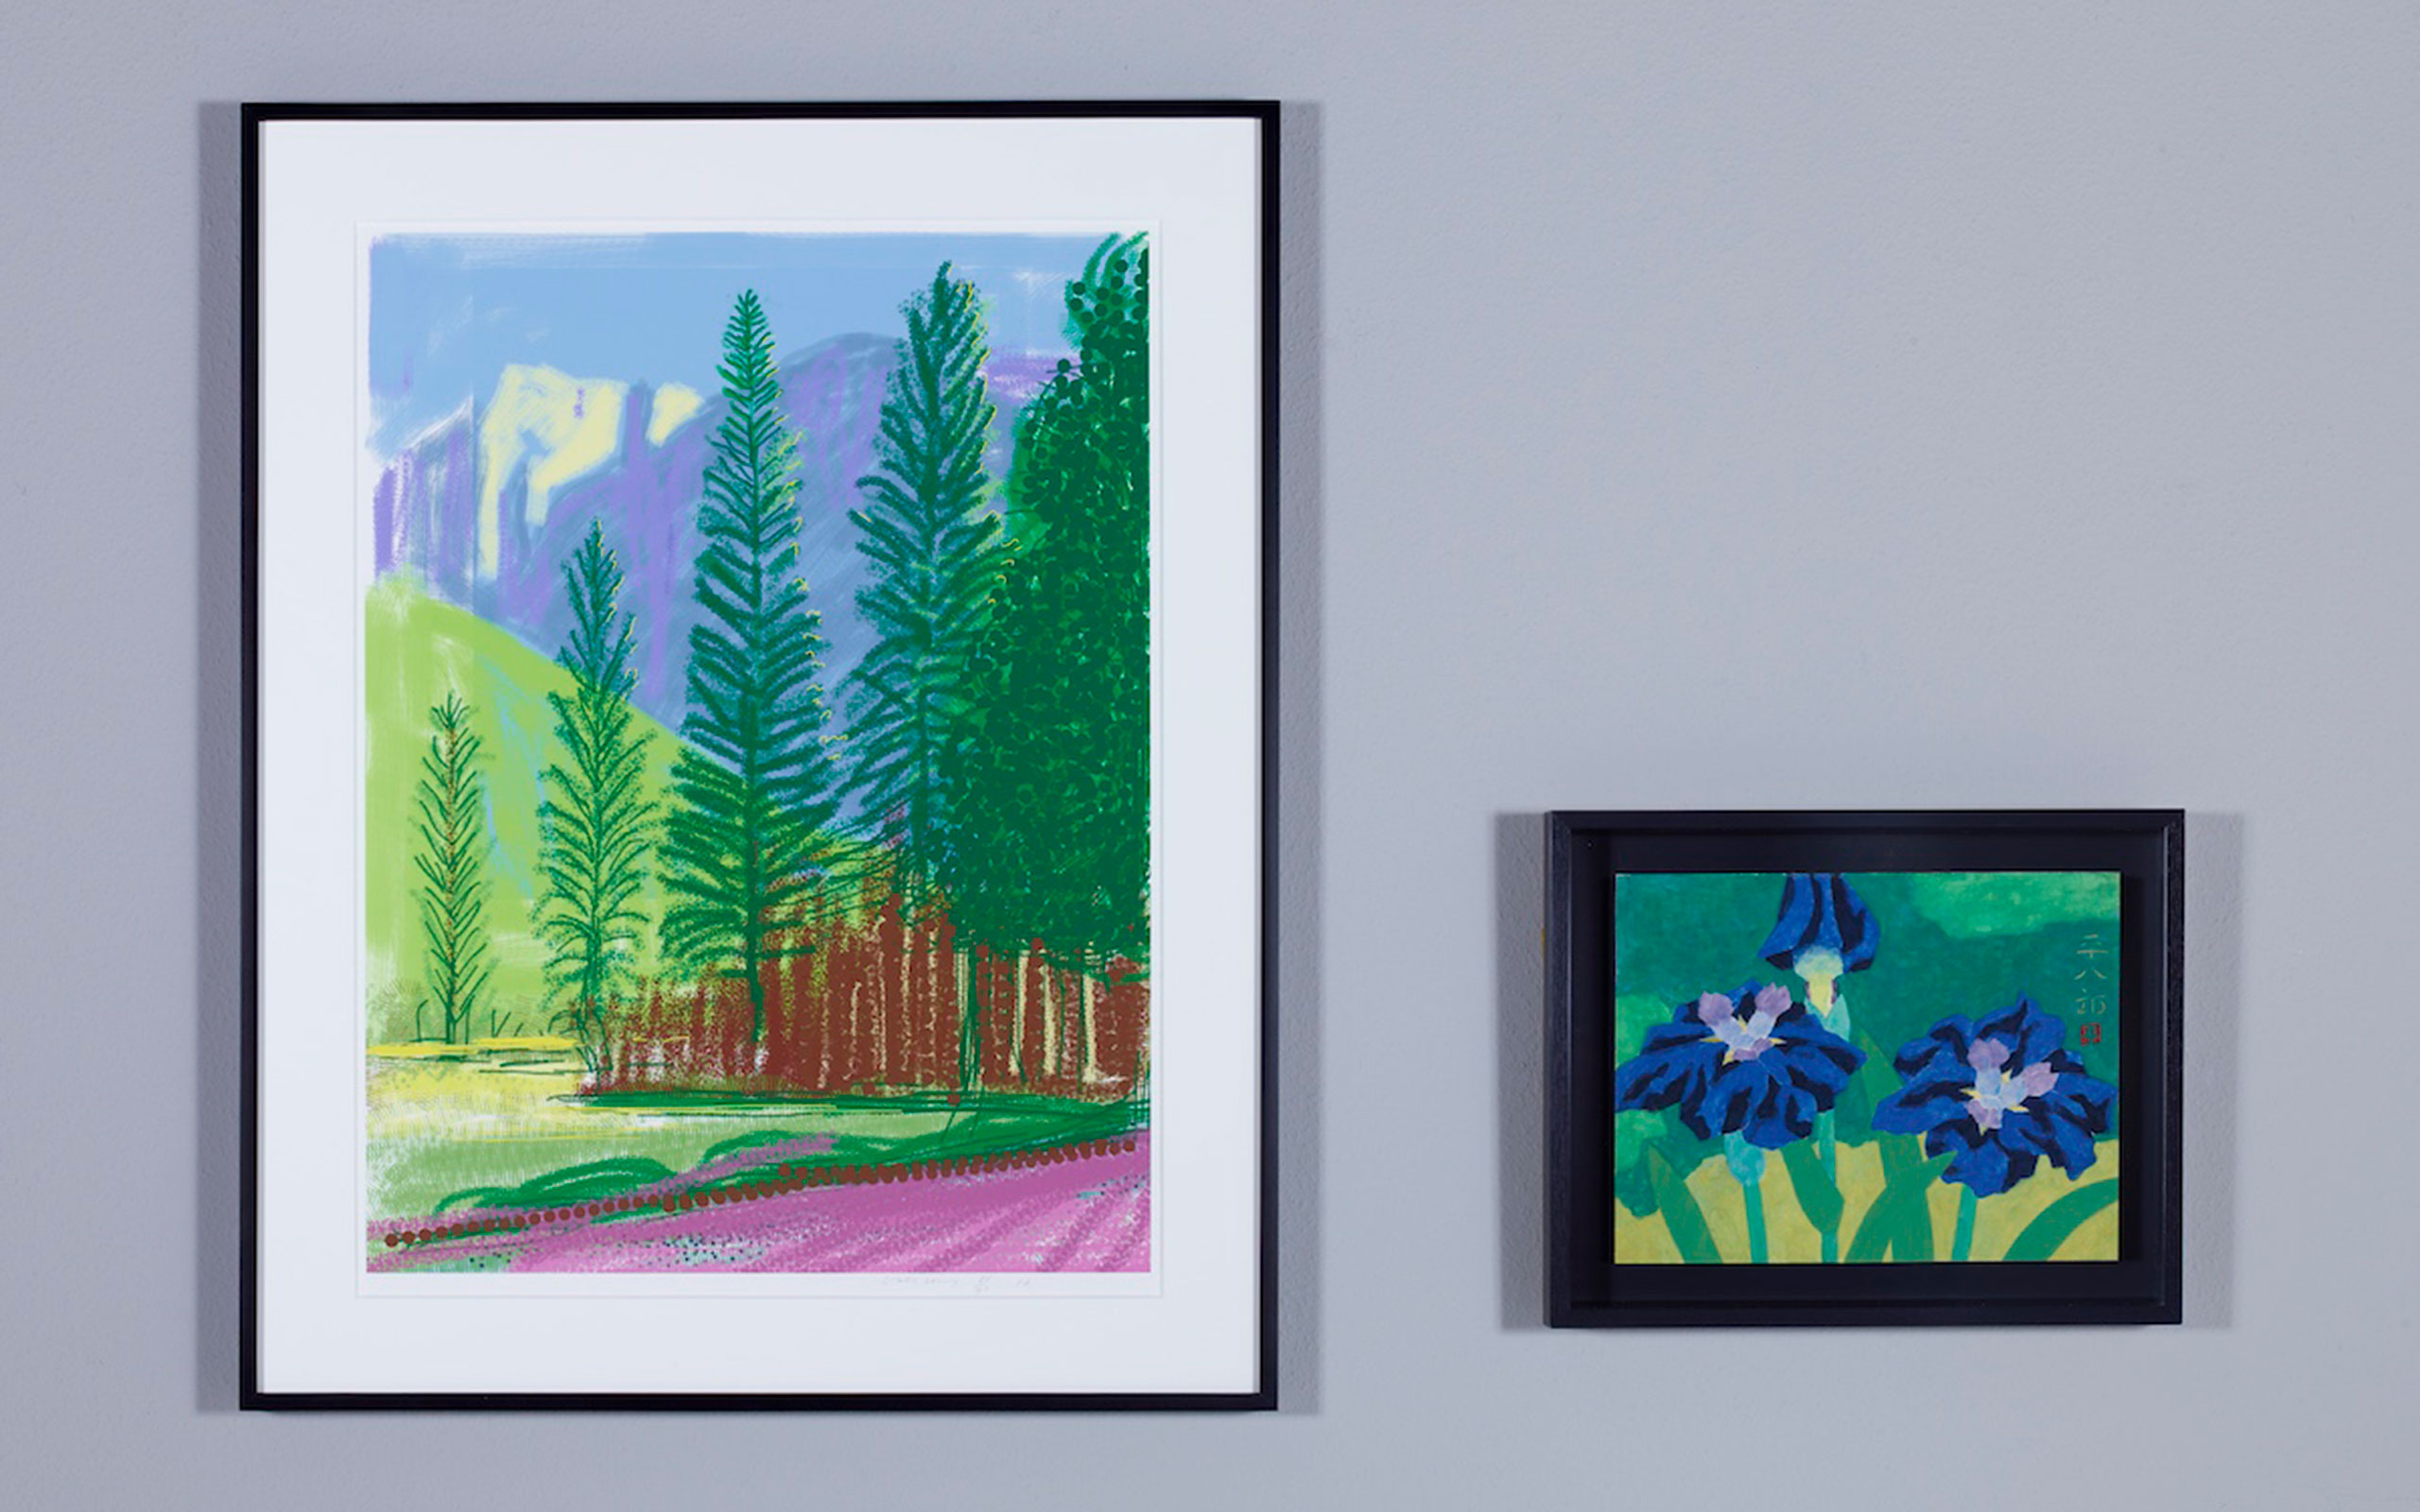 David Hockney  and Heihachirō Fukuda To Hold A Joint Exhibition 'An Encounter of Two Colorists' At THE CLUB